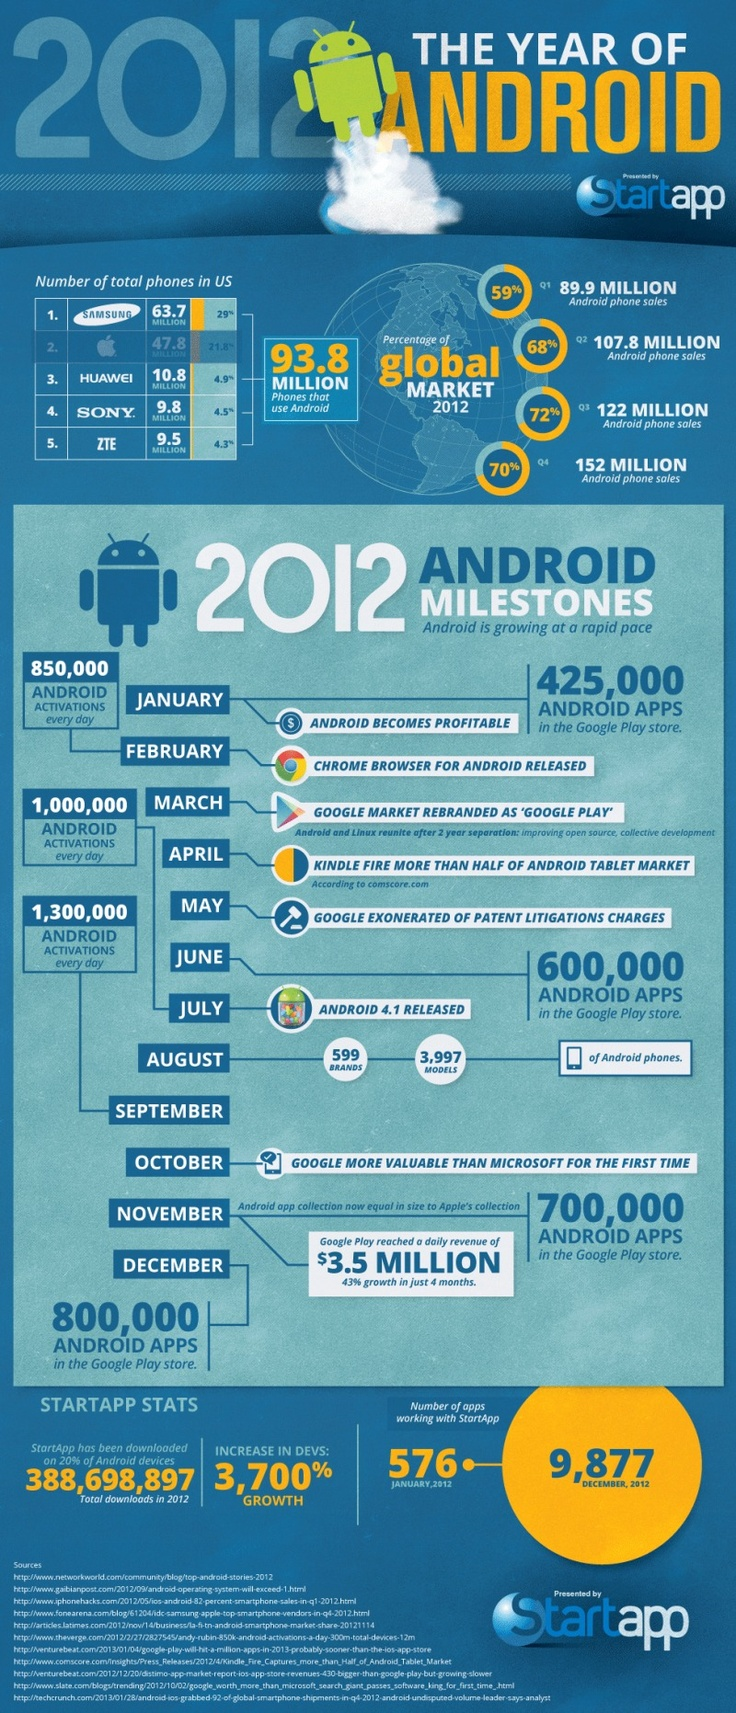 2012: The Year of Android